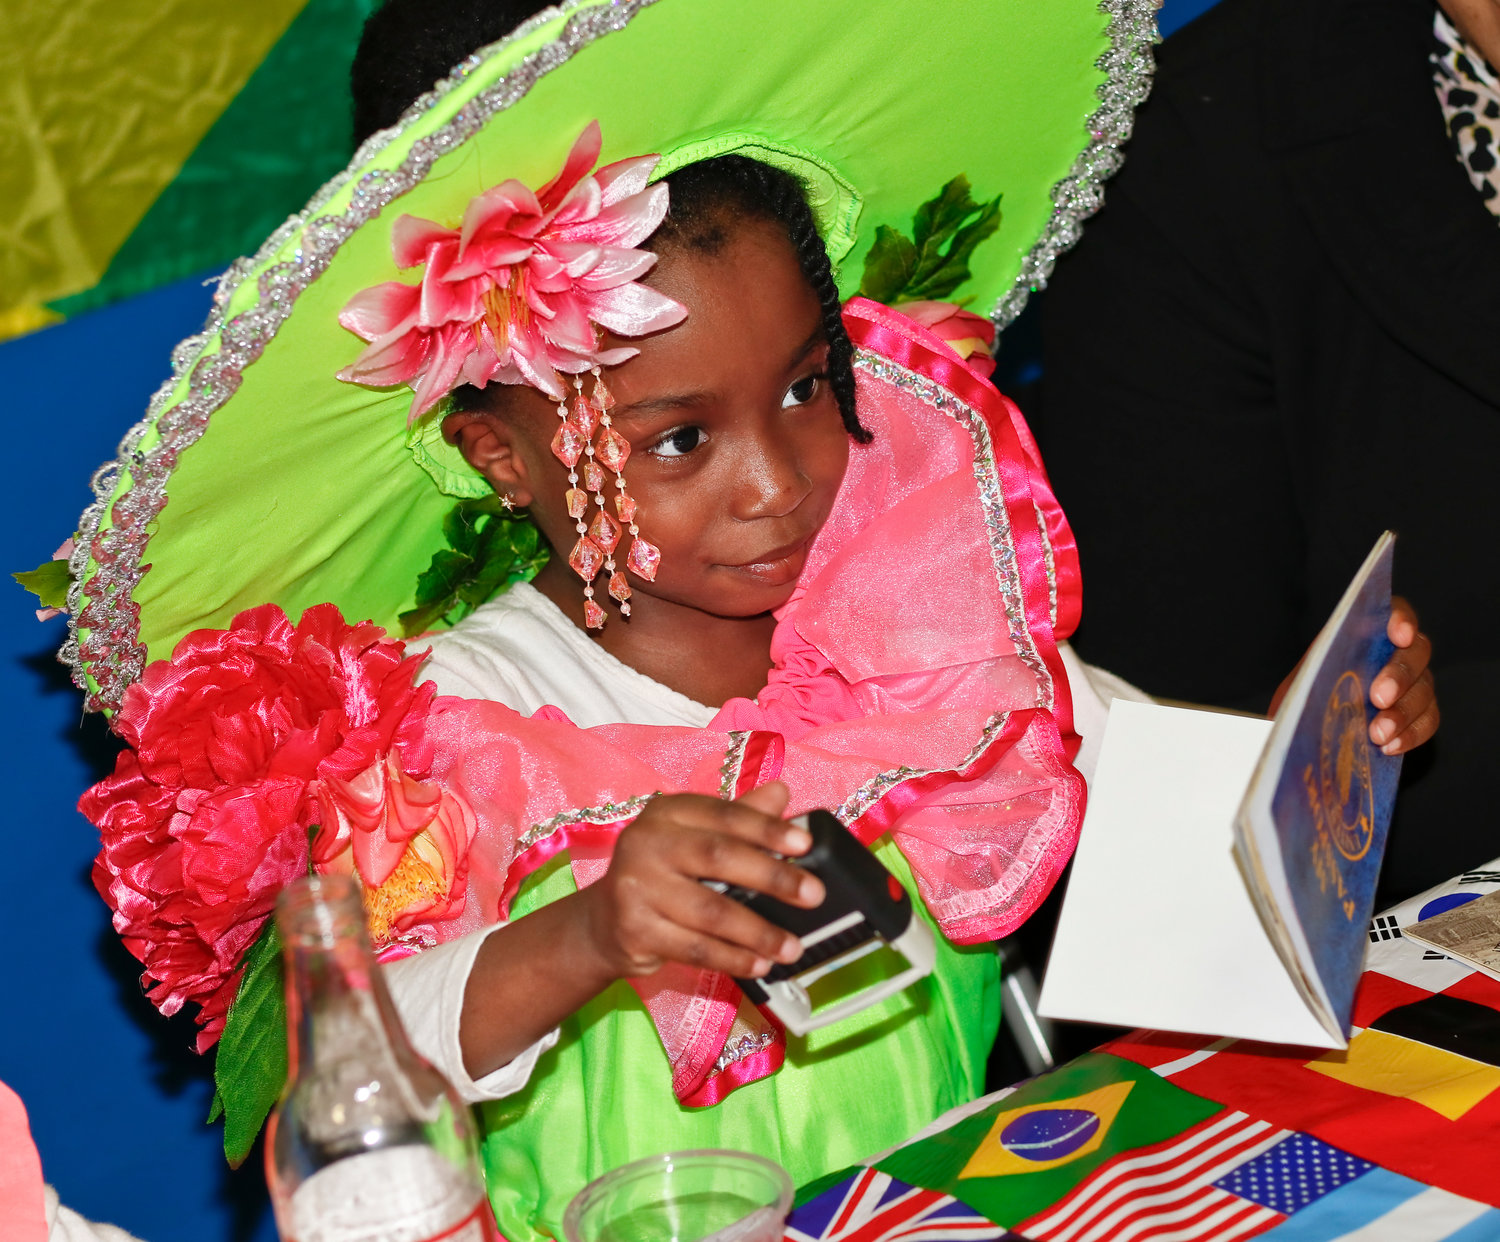 Representing Trinidad and Jamaica, Kaitlyn John, 4, a student at FECC stamped passports dressed in garb for Carnival season.